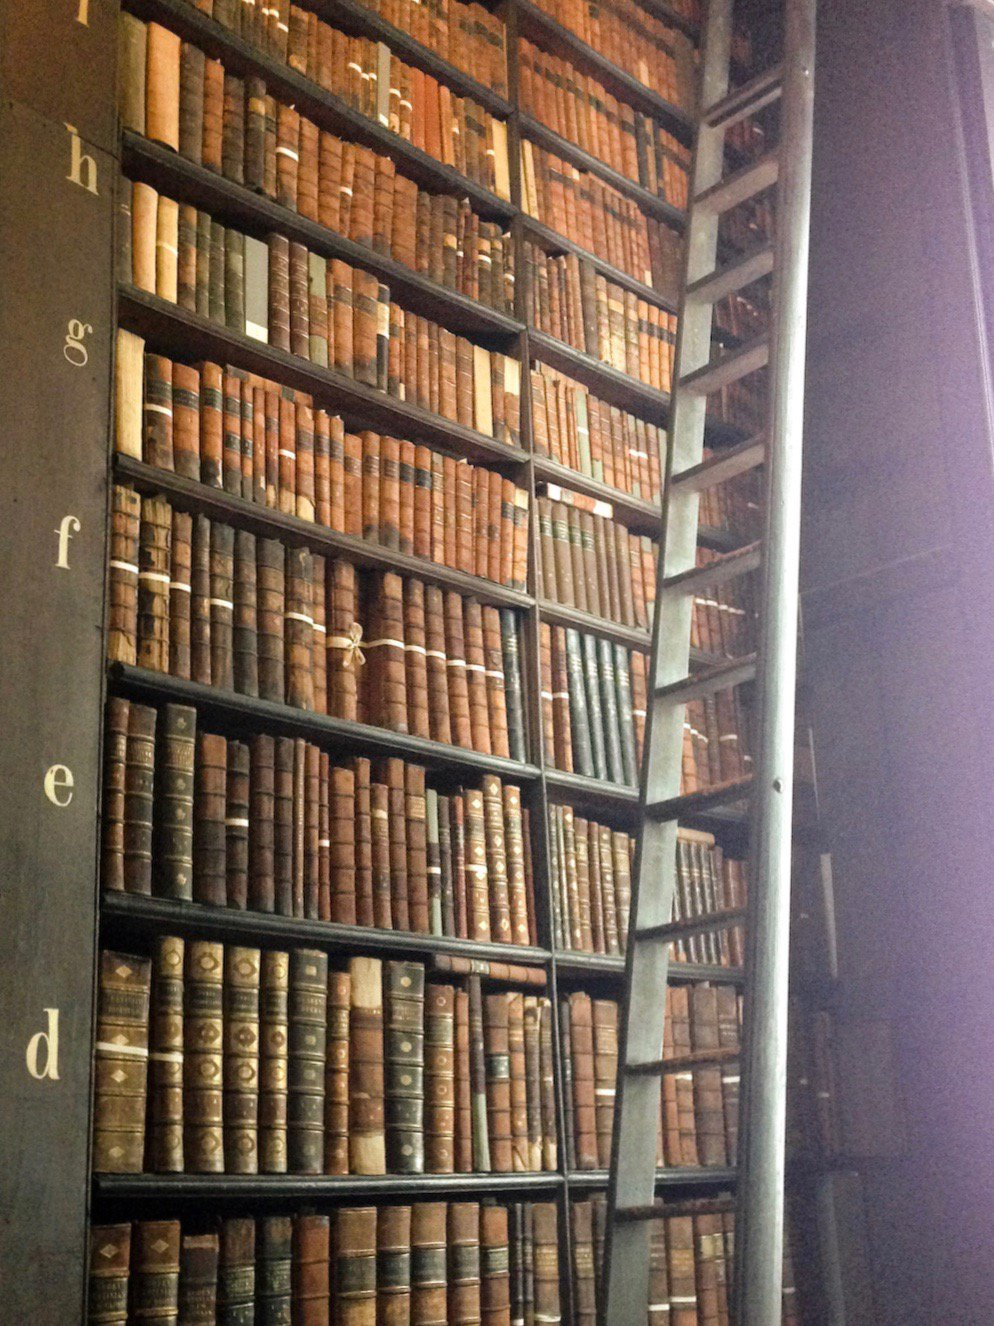 Lovely old books at Trinity College, Dublin (Eat Me. Drink Me.)